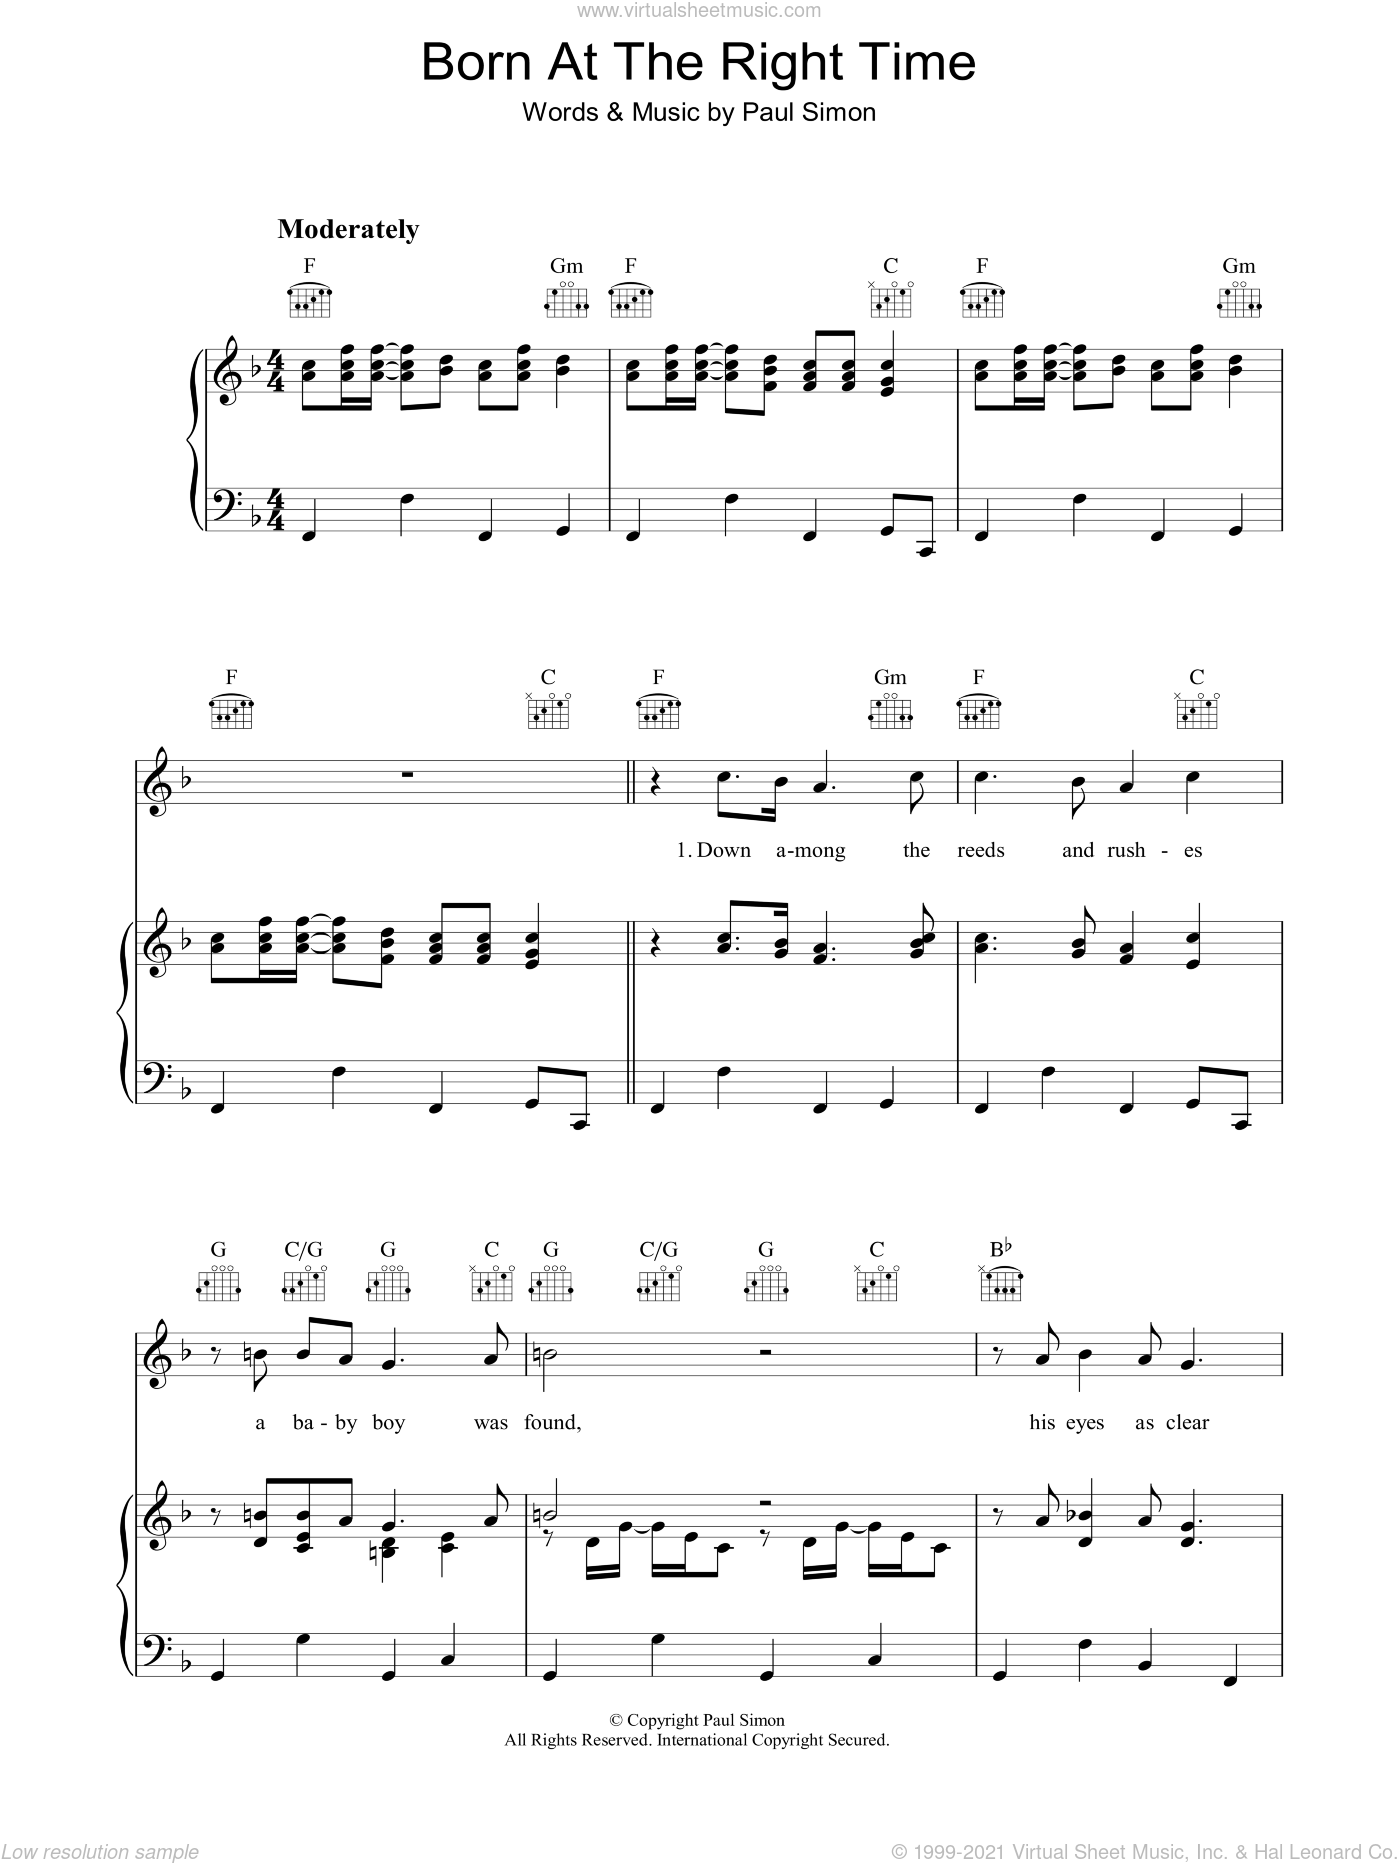 Born At The Right Time sheet music for voice, piano or guitar by Paul Simon, intermediate